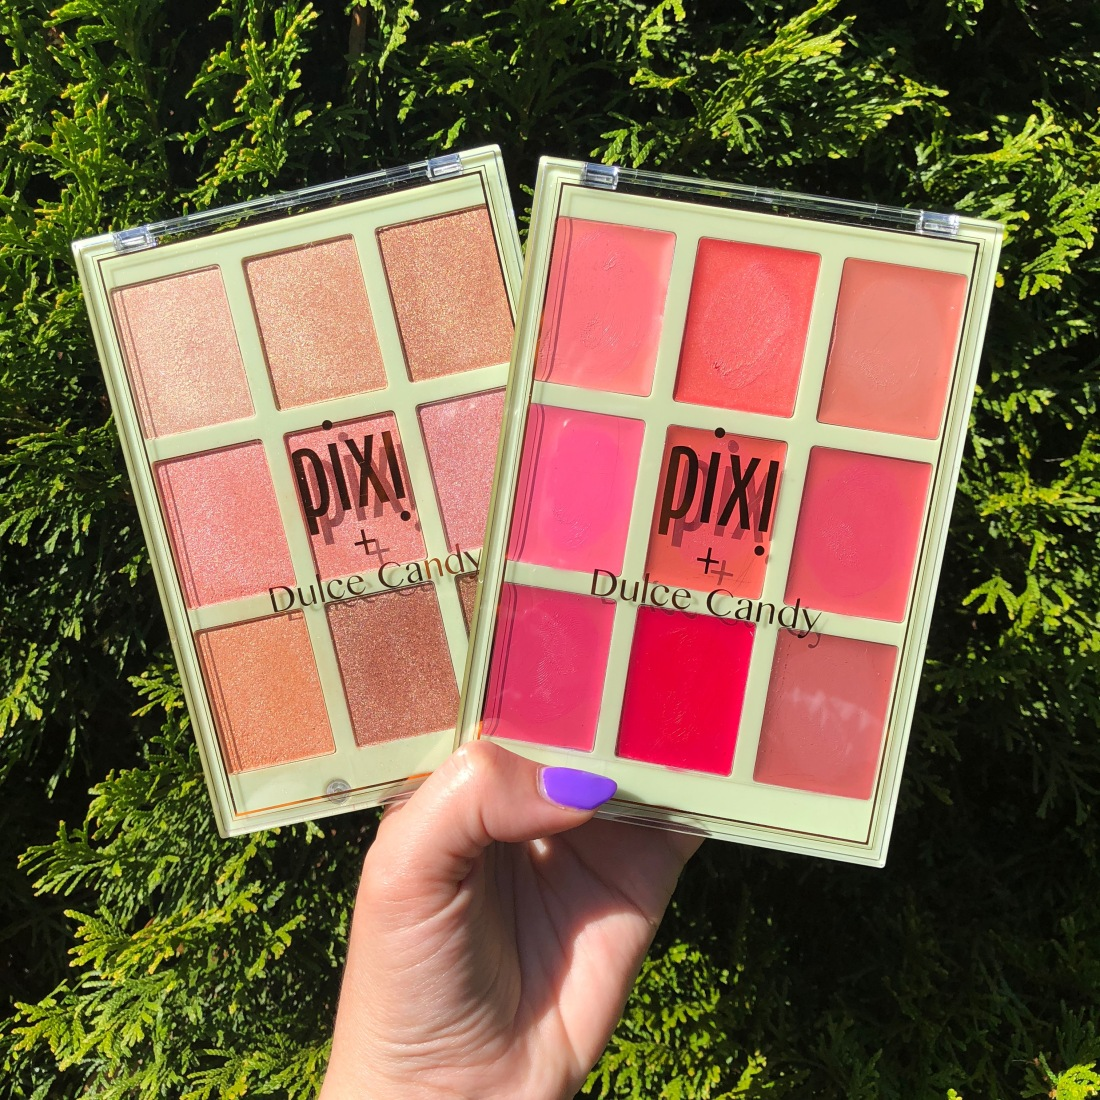 Pixi x Dulce Candy Palette Reviews